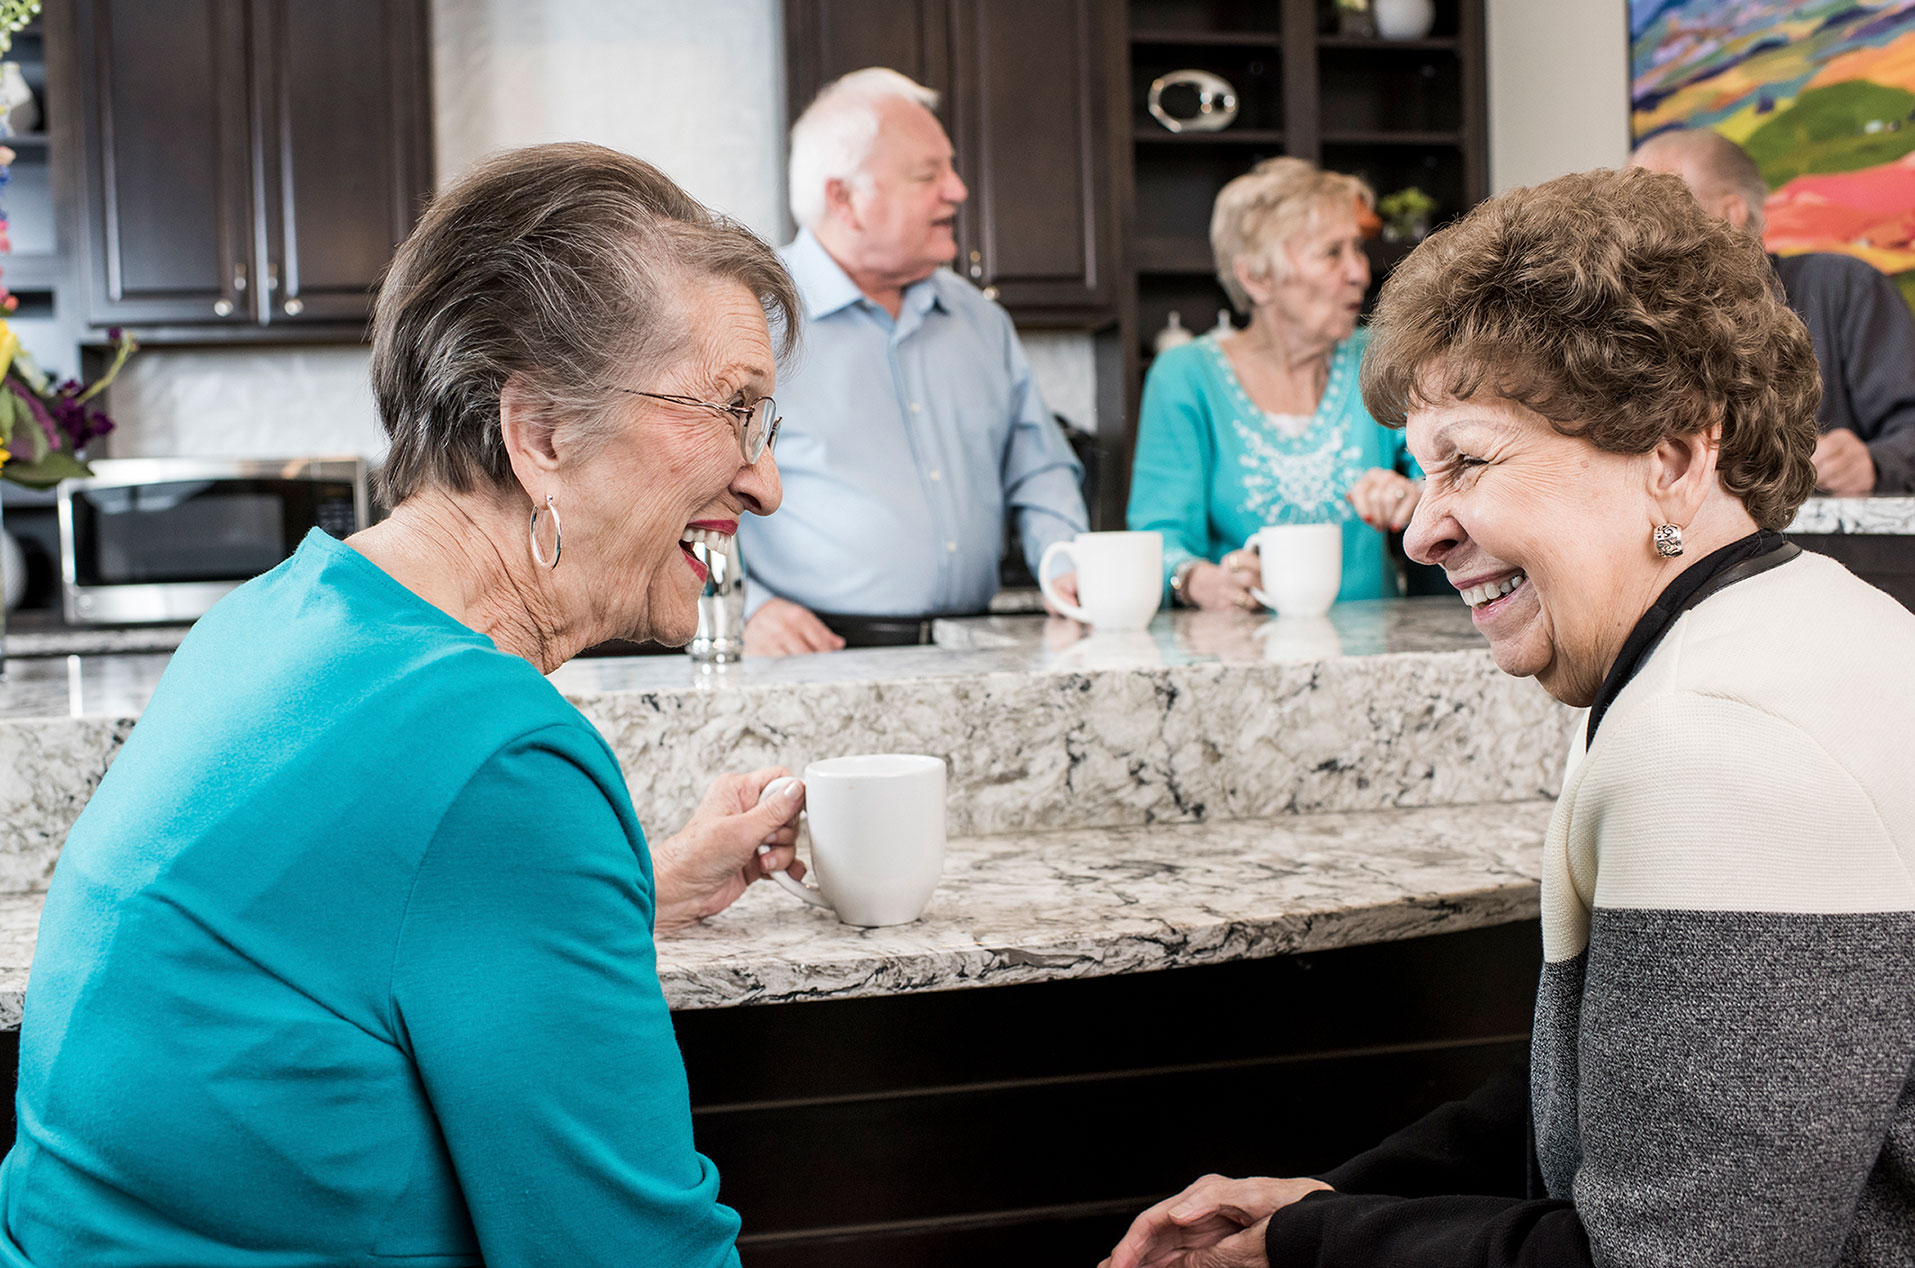 Residents Laugh While One Holds A Coffee